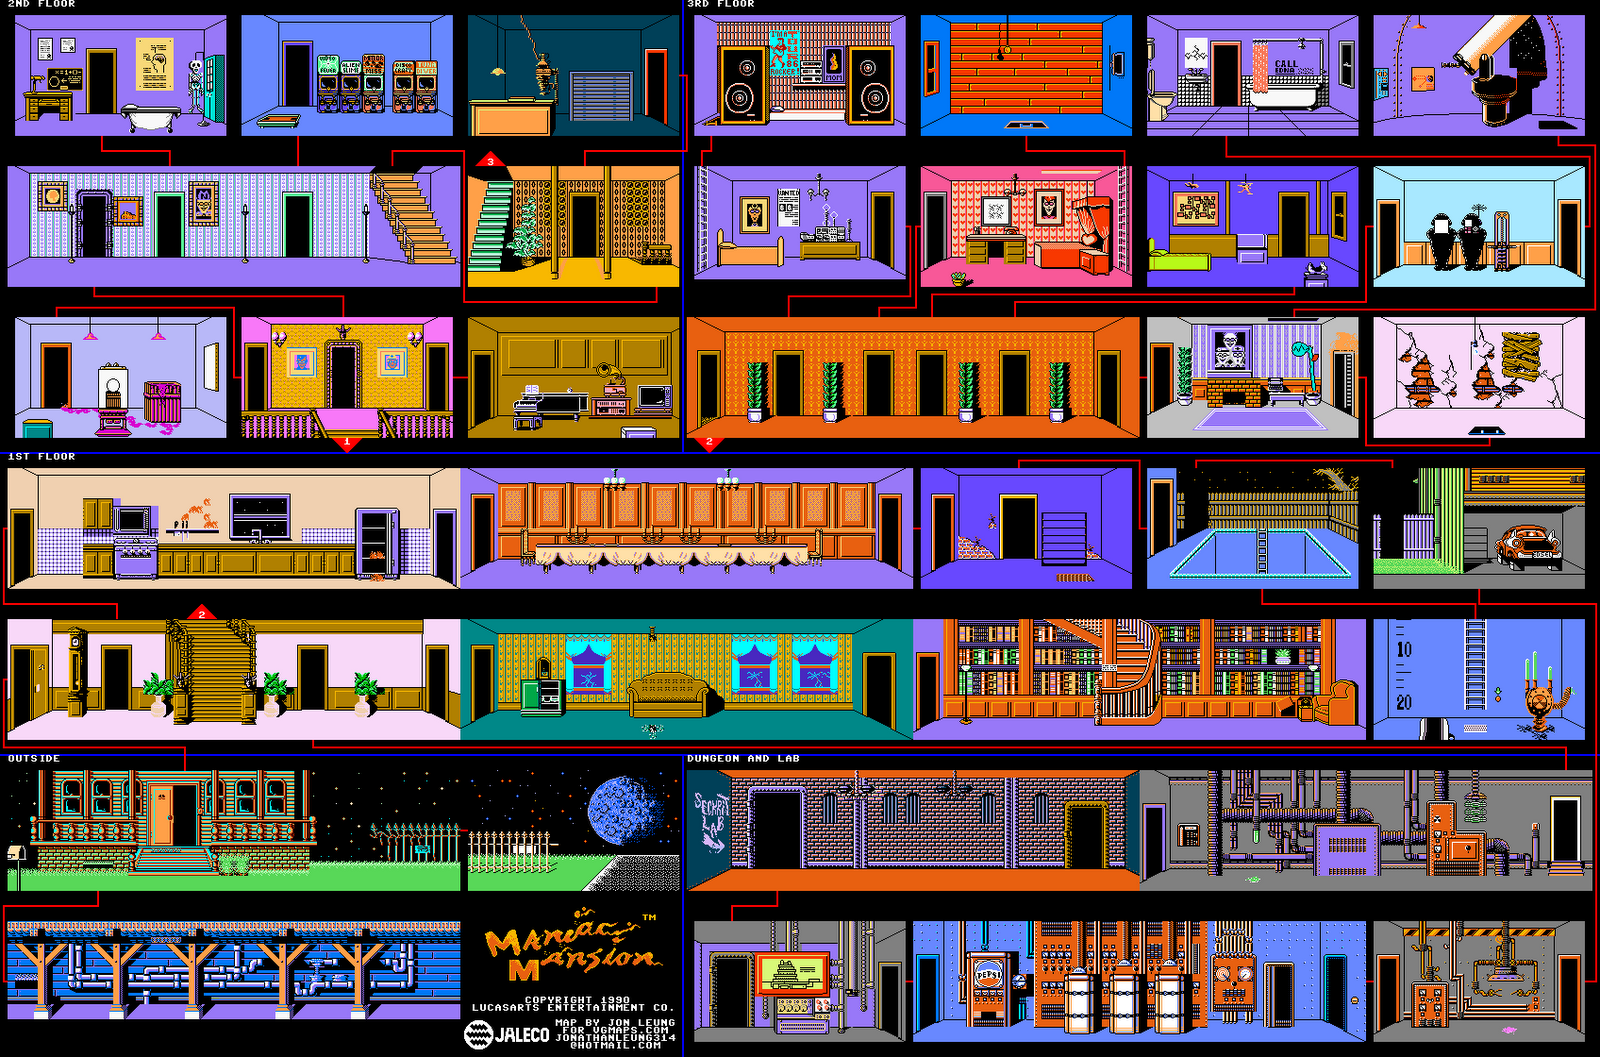 Rooms in a house template - Mu Foundation Maniac Mansion